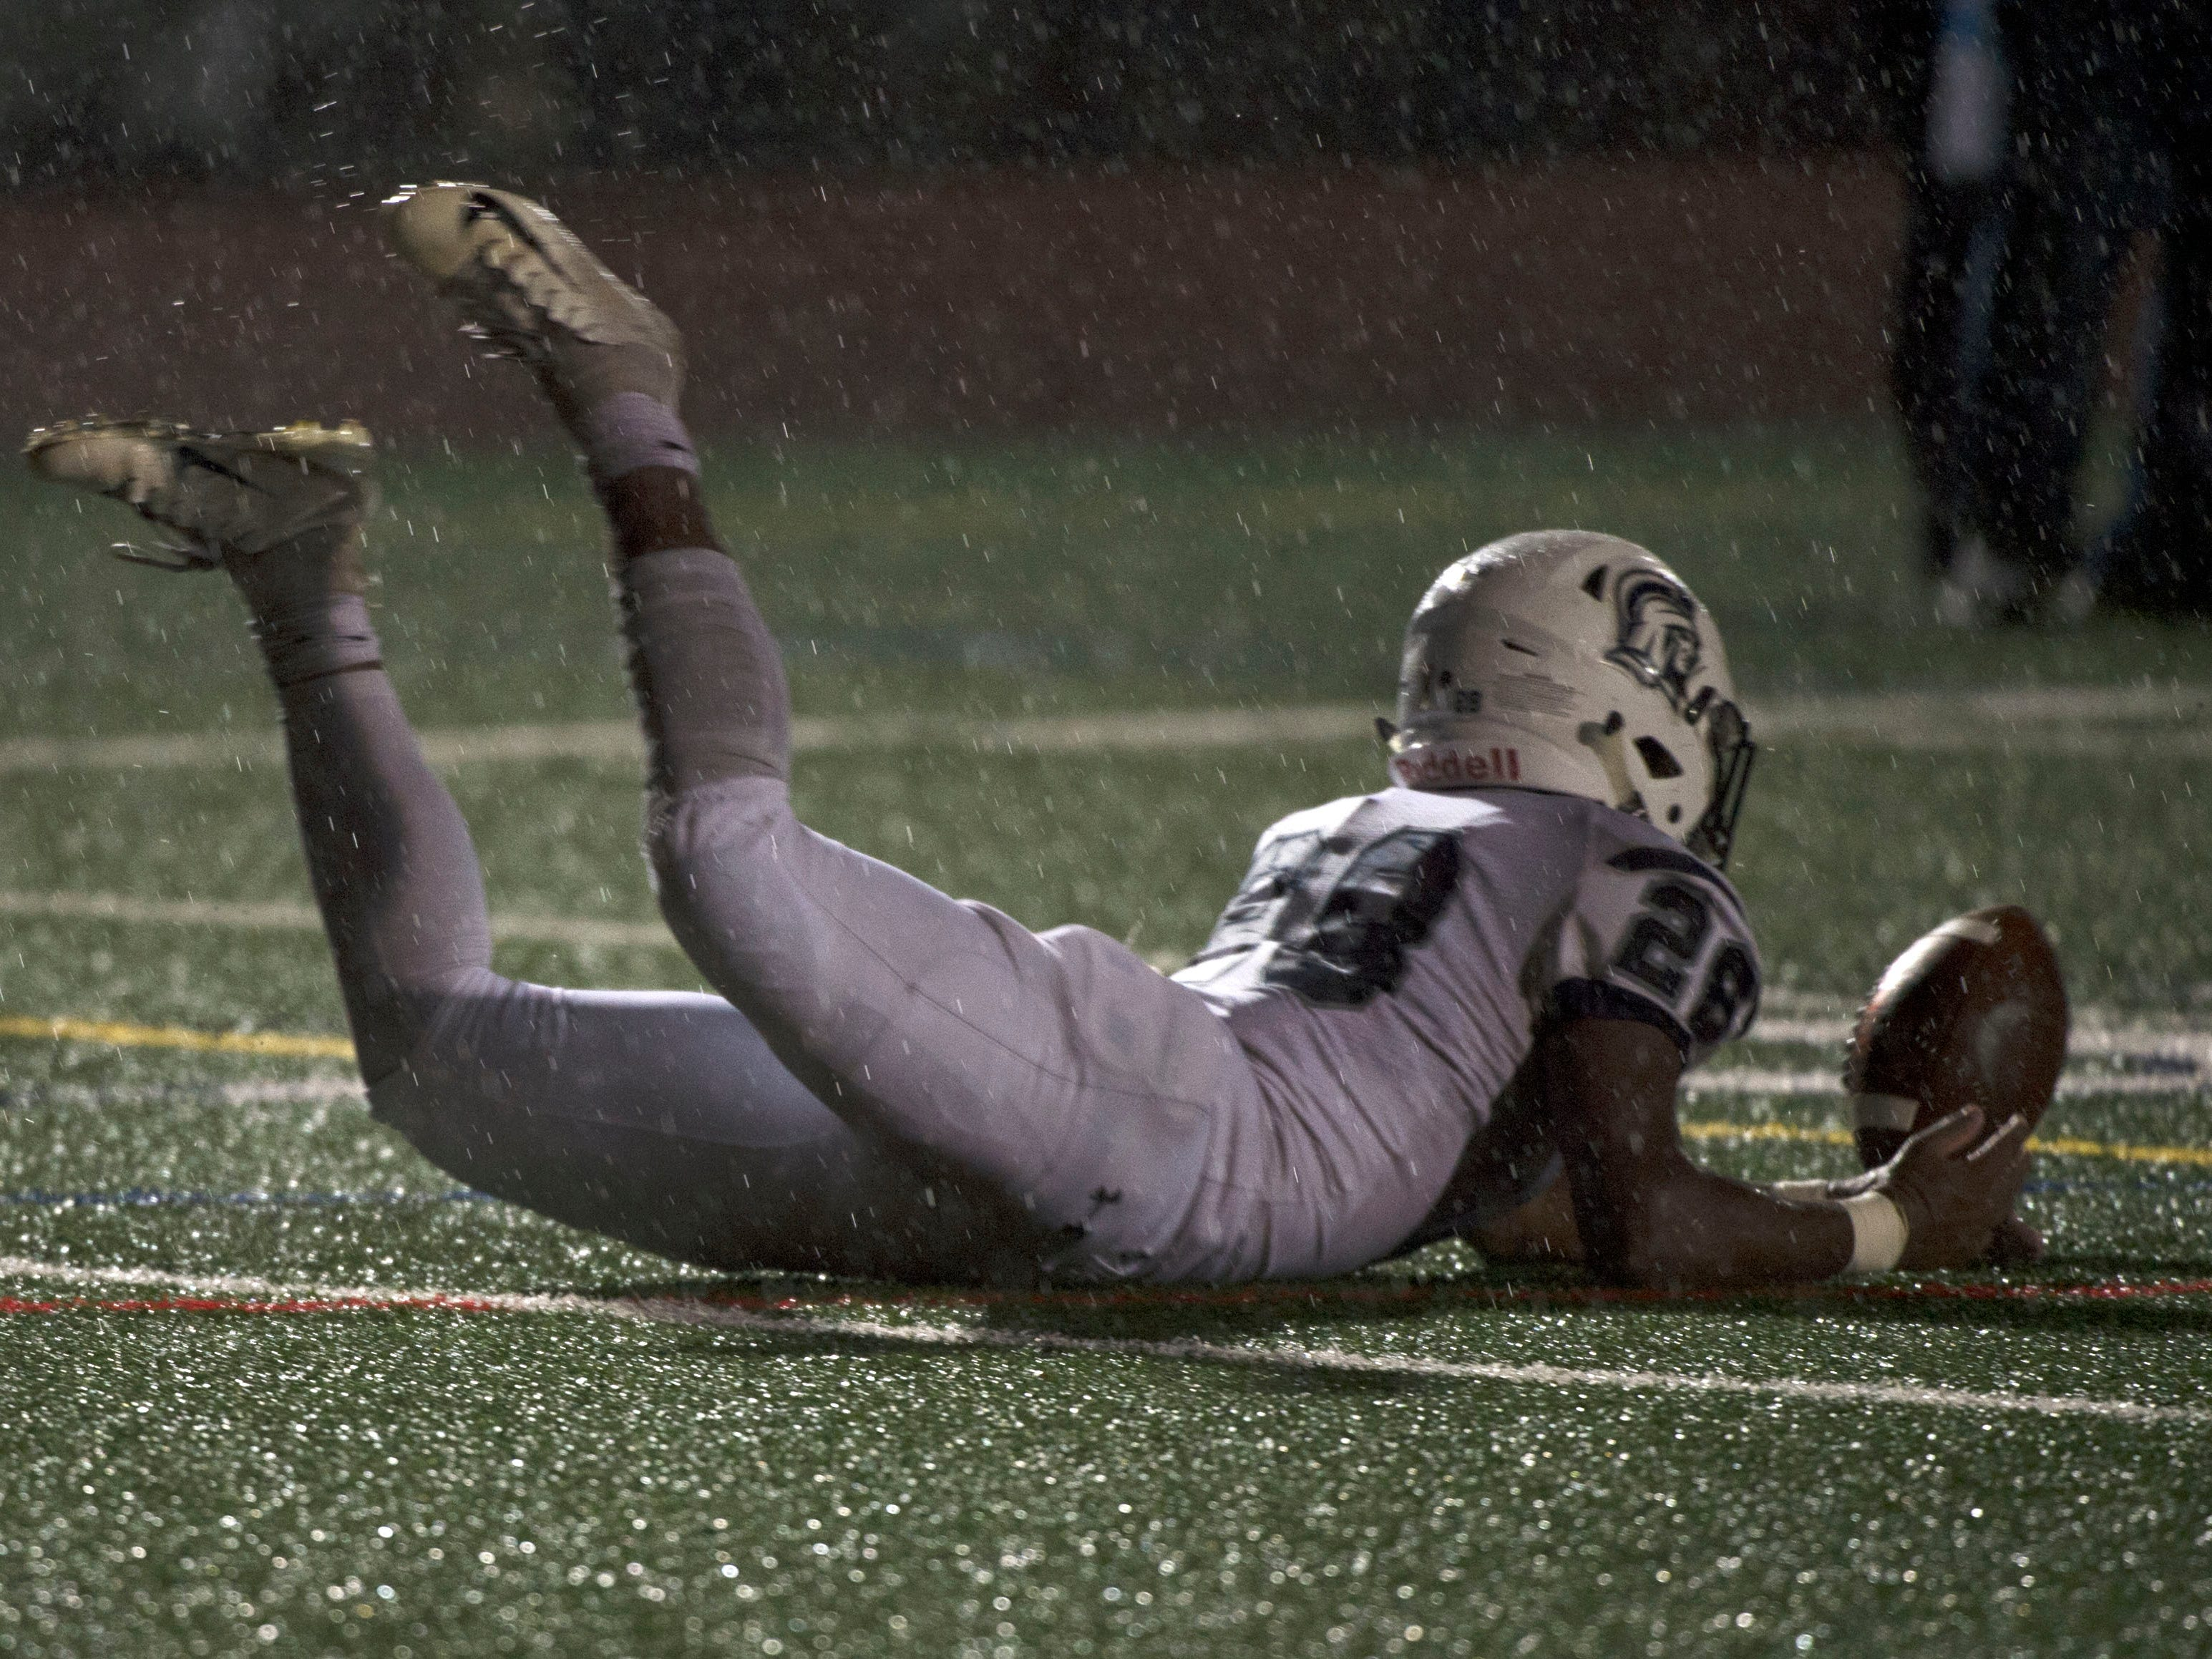 Chambersburg's Keyshawn Jones (28) slides in after the ball. Chambersburg Trojans dropped a close game 20-17 to Manheim Township Blue Streaks in the rain during PIAA District 3 playoff football on Friday, Nov. 2, 2018.